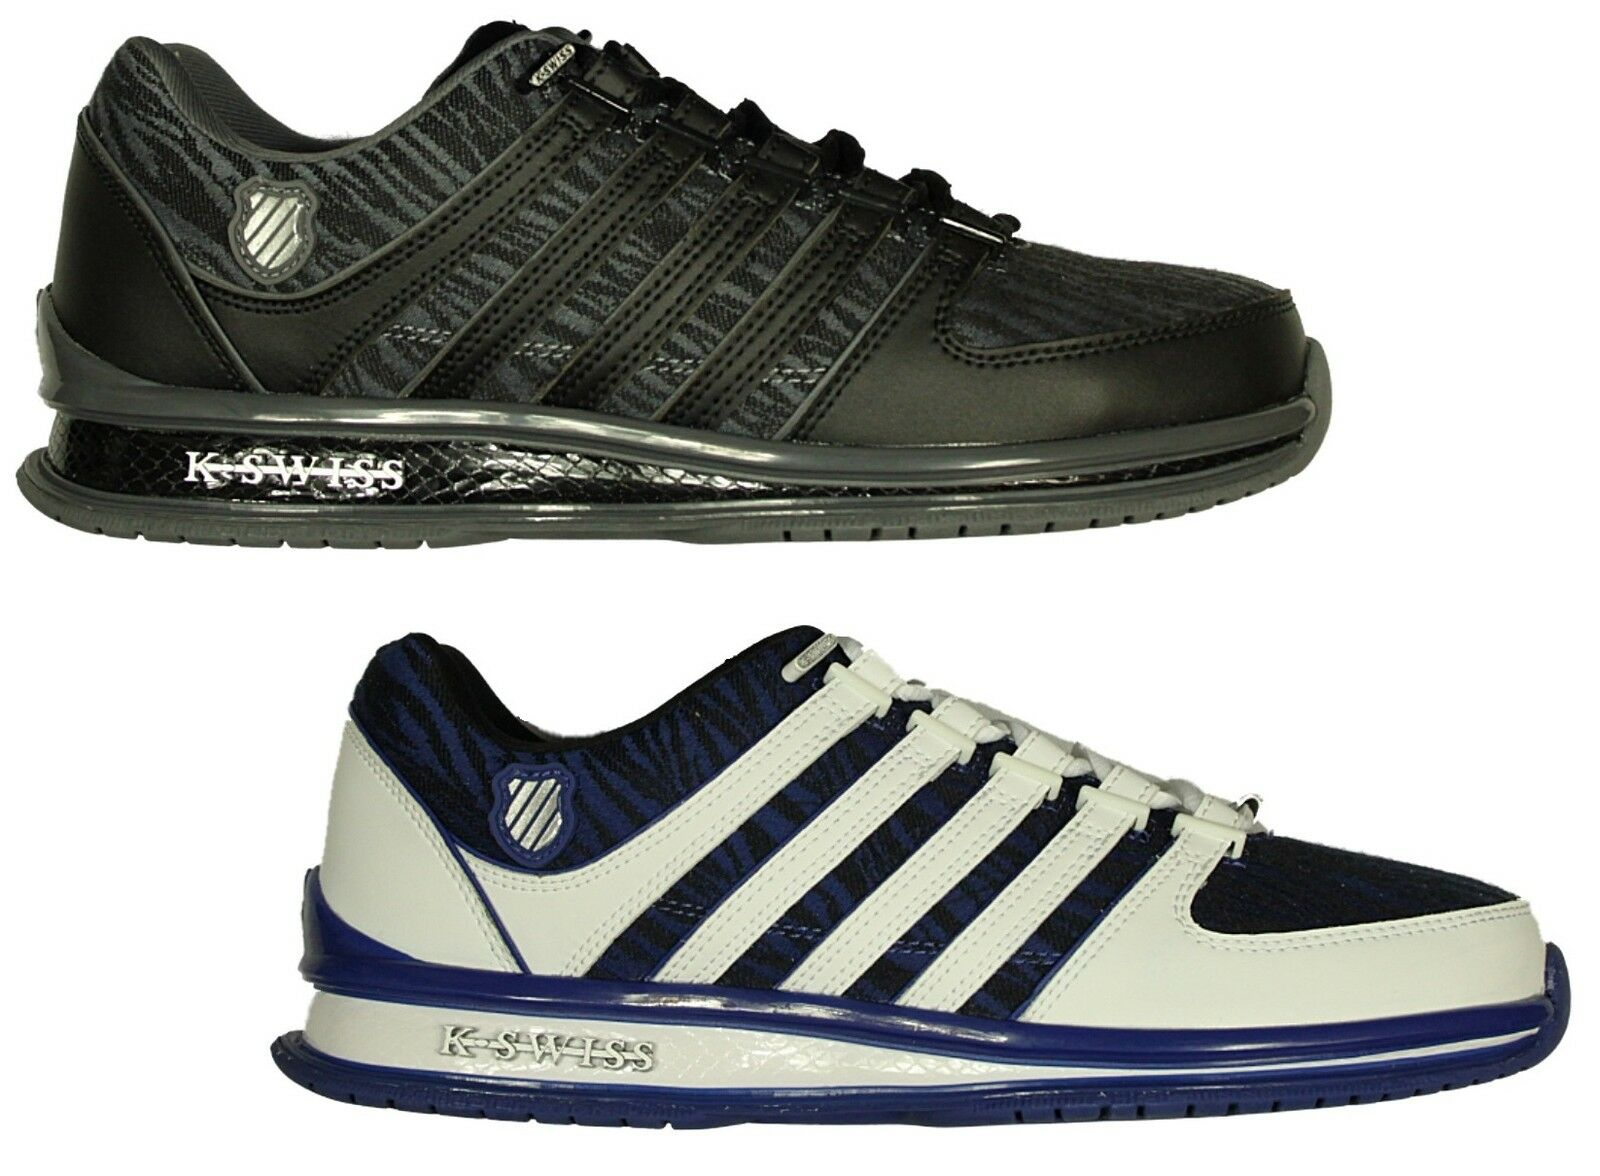 BRAND NEW Hombre K.SWISS RINZLER IN LACE UP TRAINERS FOOTWEAR IN RINZLER Gris-Blanco COLOURS 60532d